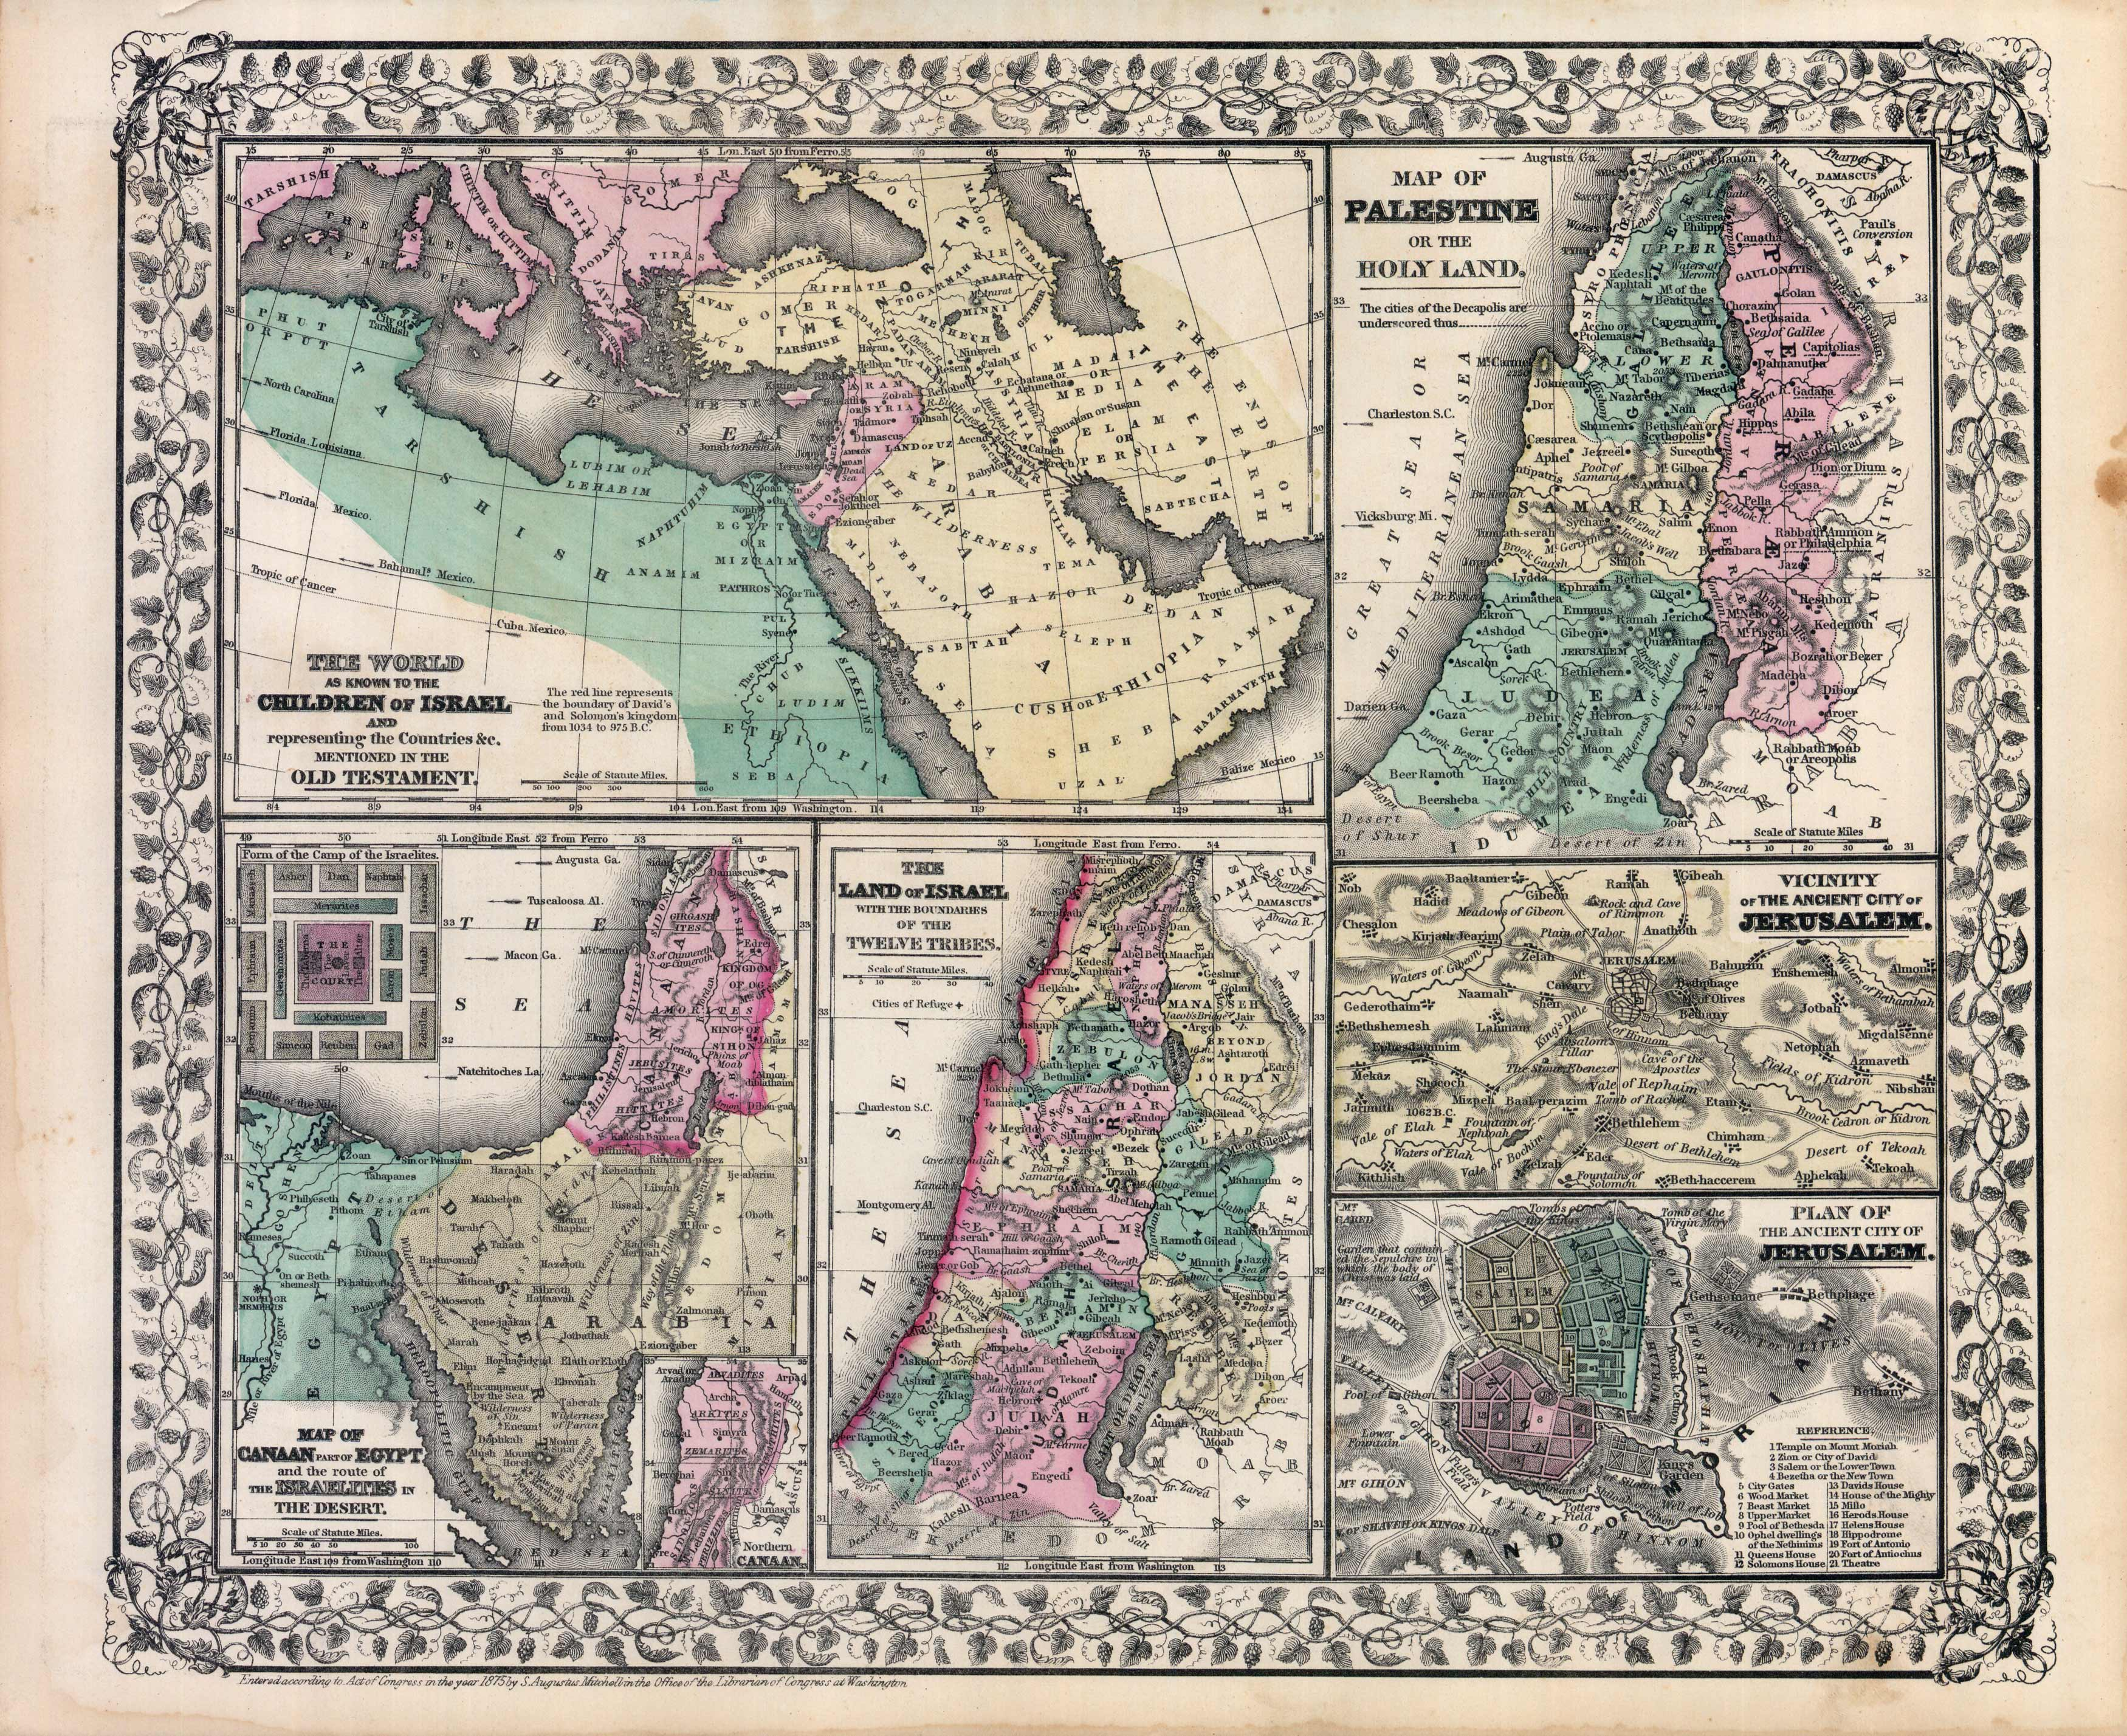 The World as Known to the Children of Israel / Palestine / Canaan Part of Egypt and the route of the Israelites in the Desert/ Land of Israel / Jerusalem